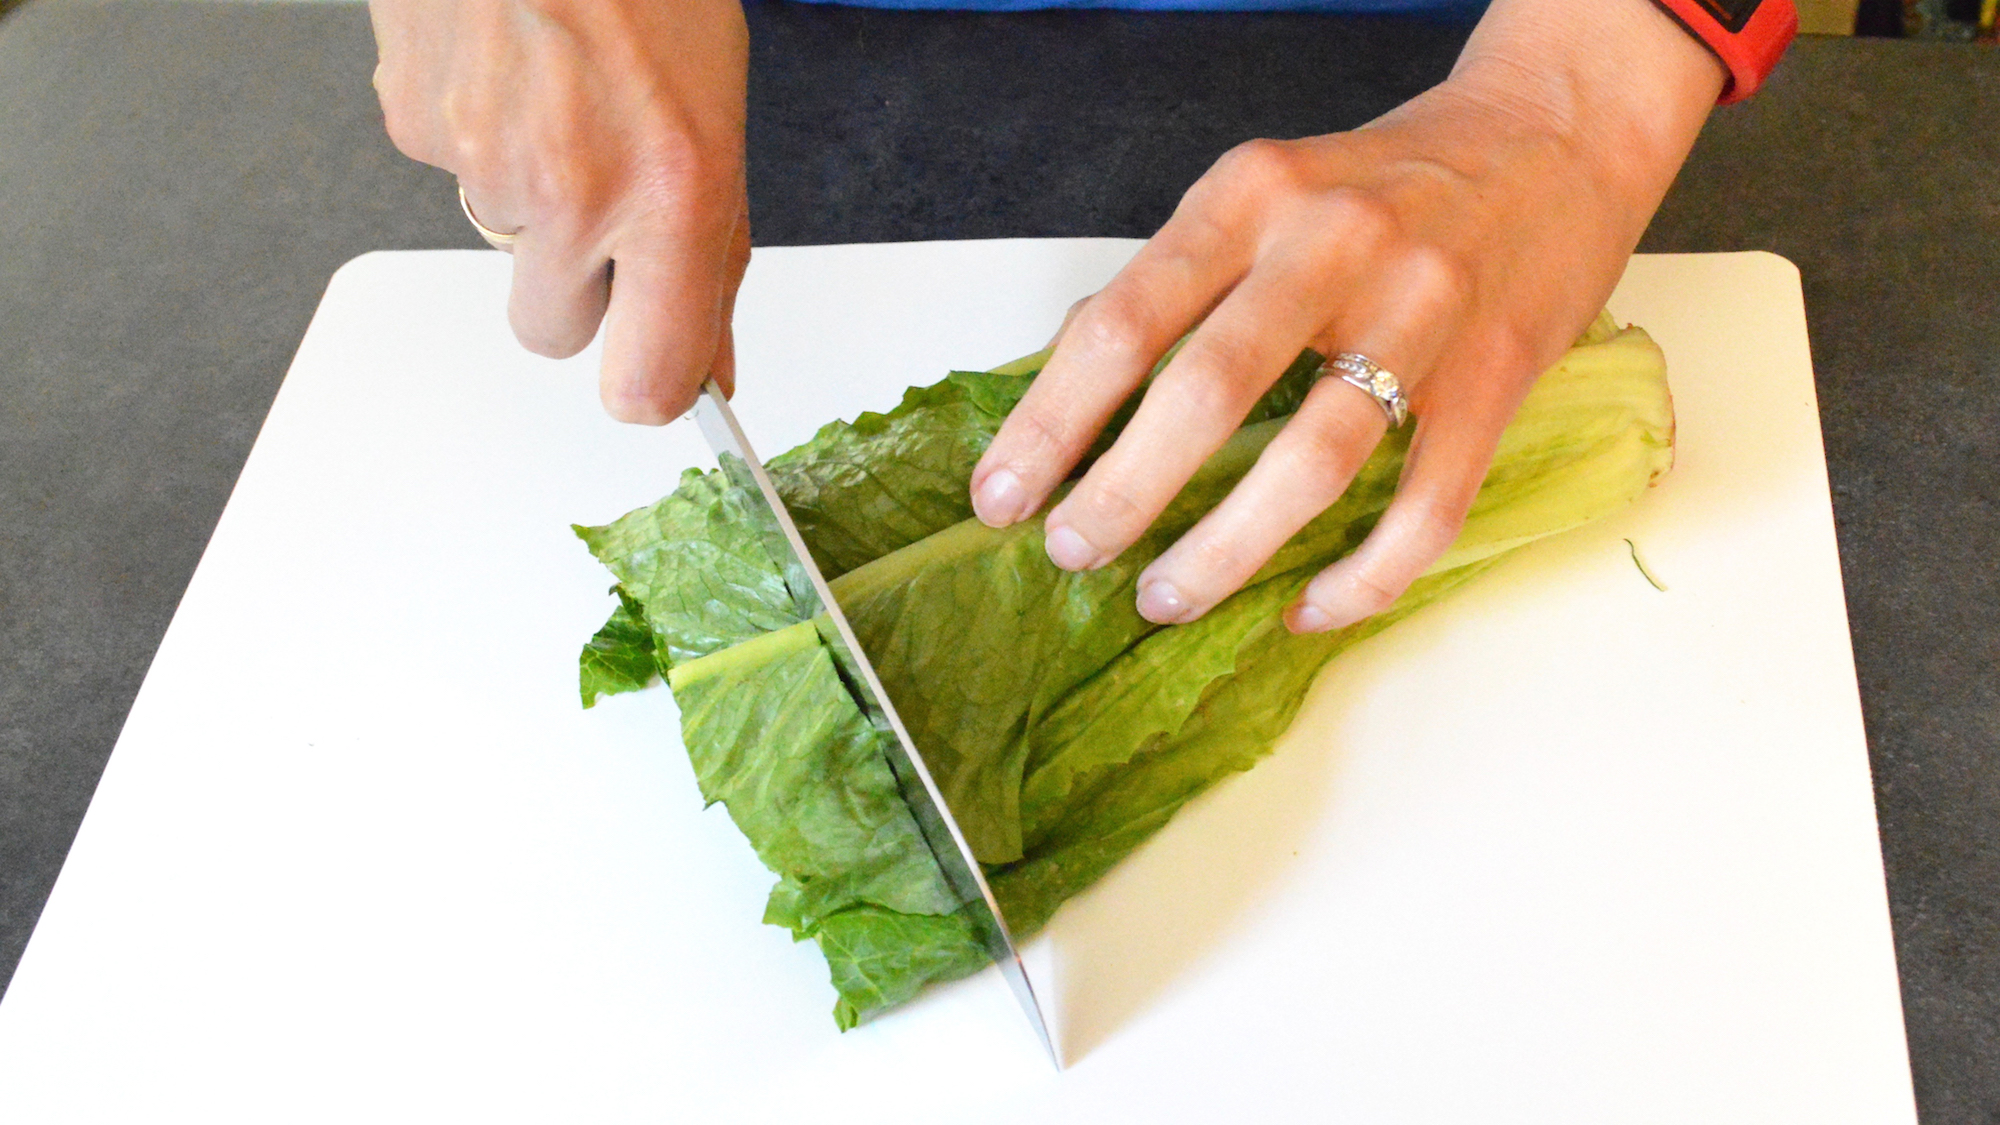 Cutting Romaine.jpg